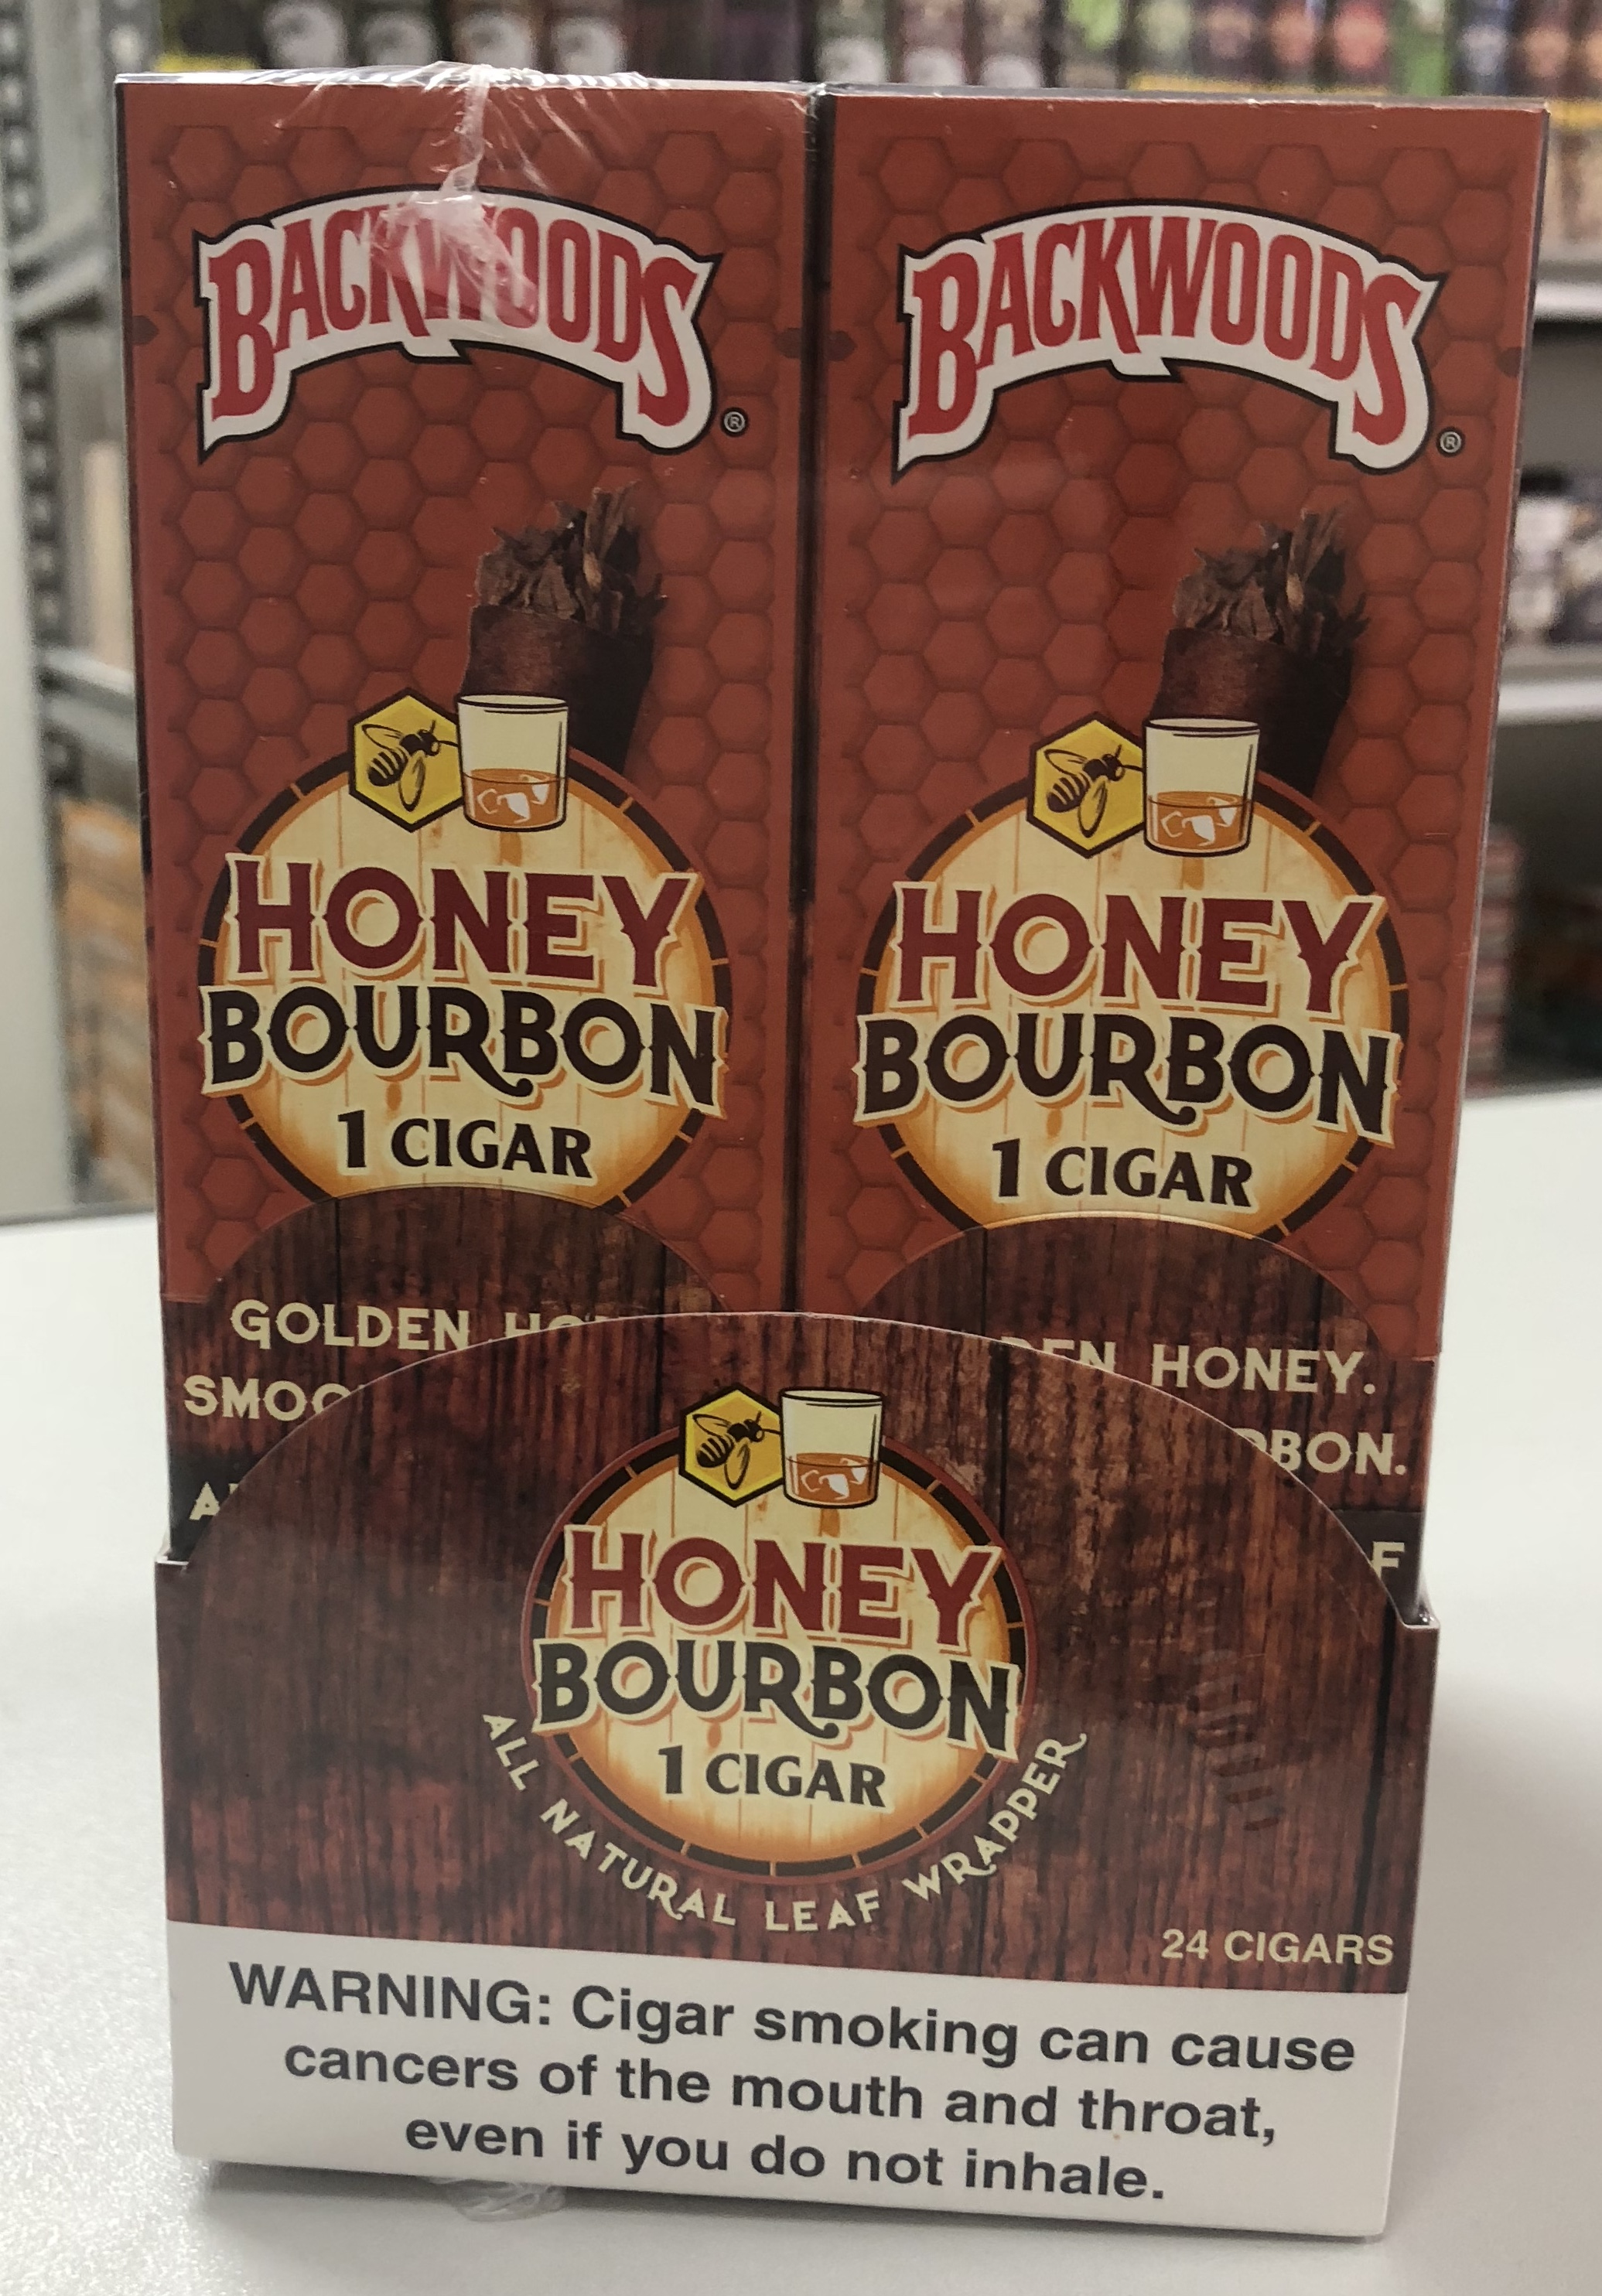 Backwoods Honey Bourbon Cigars 24/1PK  (LIMITED QUANTITIES AVAILABLE, PLEASE CALL AHEAD BEFORE ORDERING)